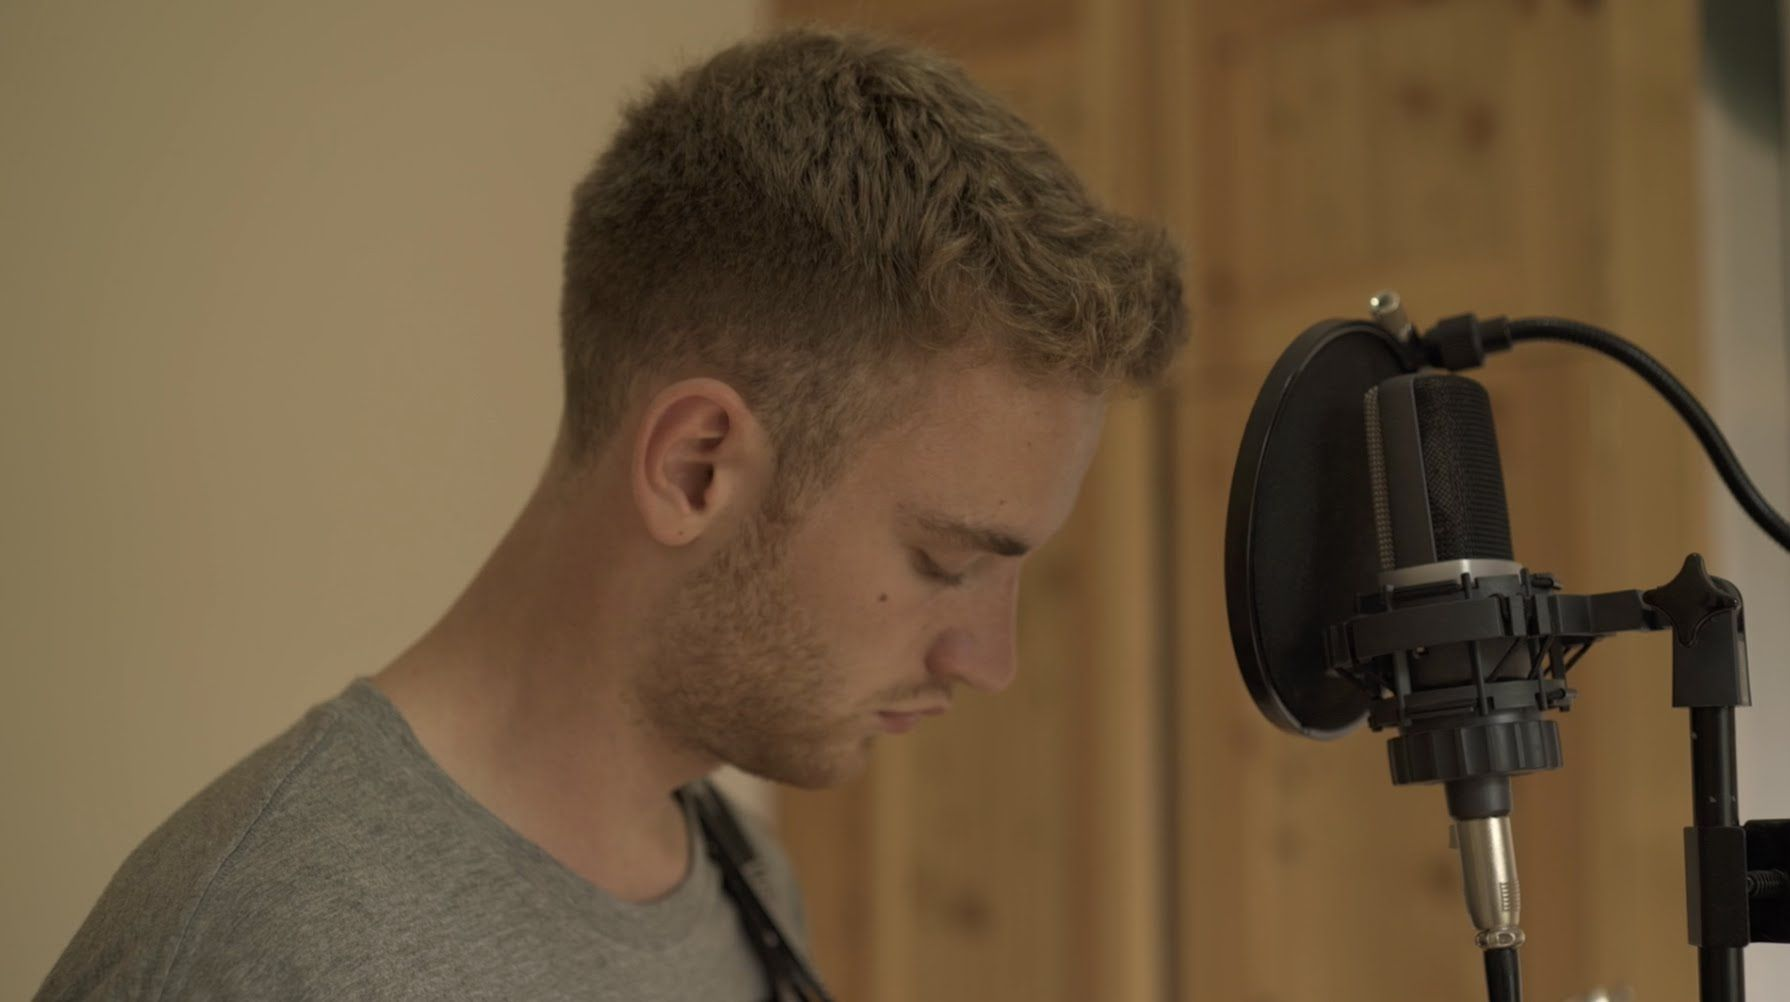 Tom Misch - Watch Me Dance (Acoustic Session) | Indie Life | Tom